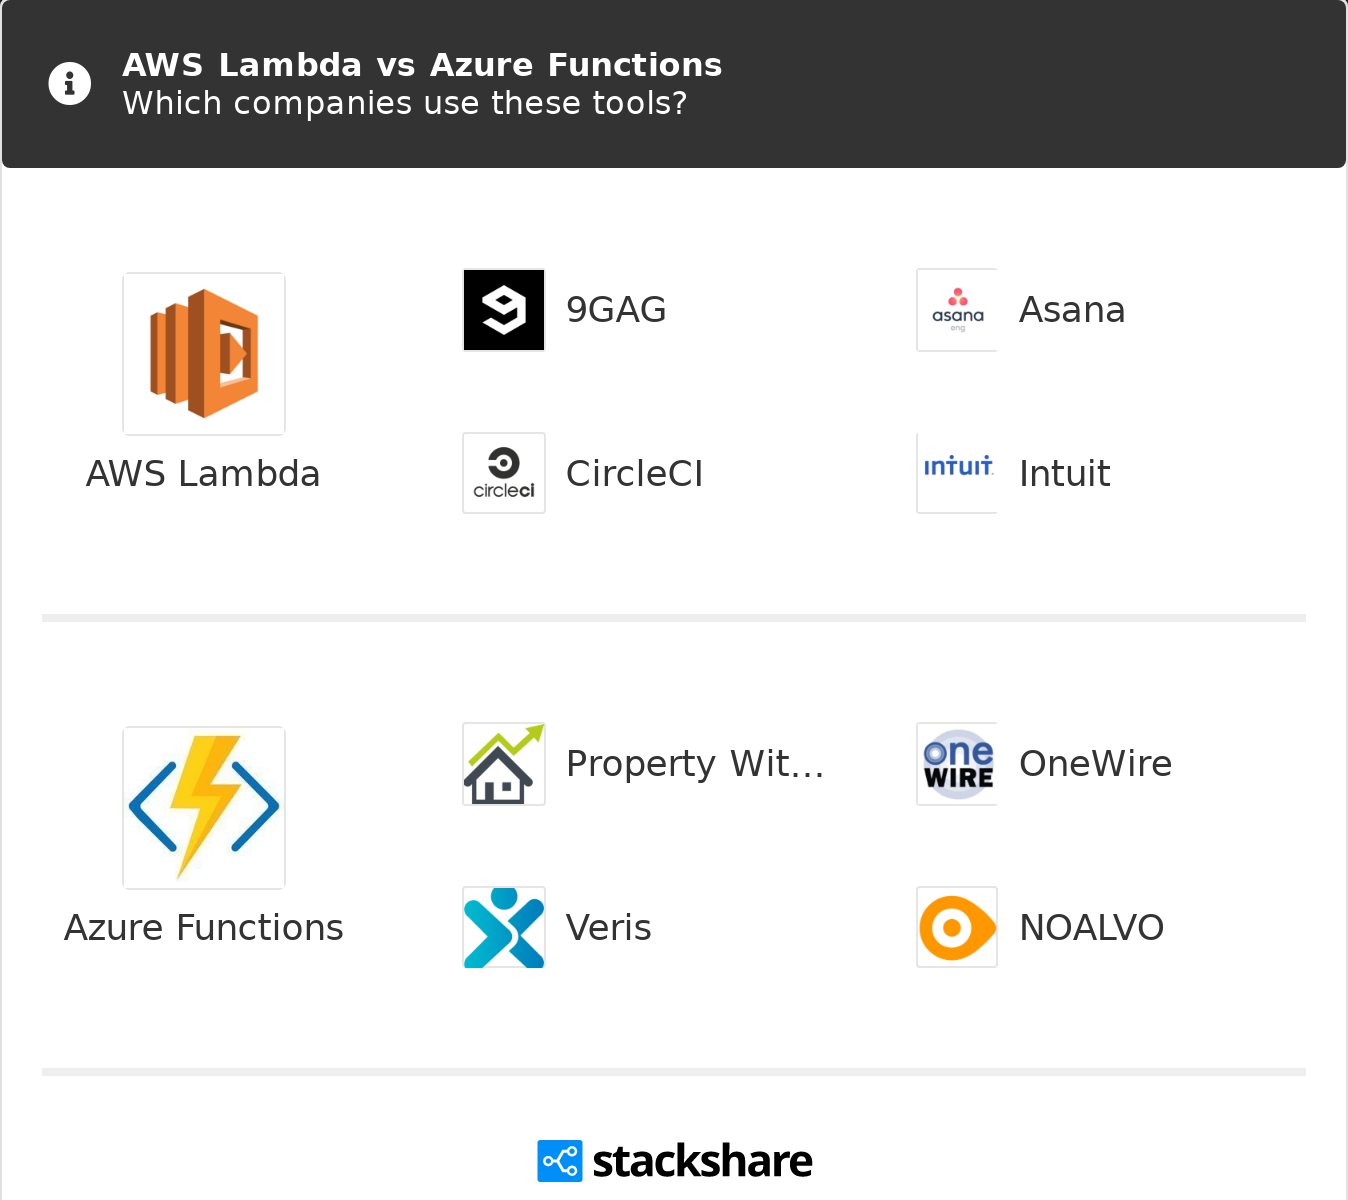 AWS Lambda vs Azure Functions | What are the differences?